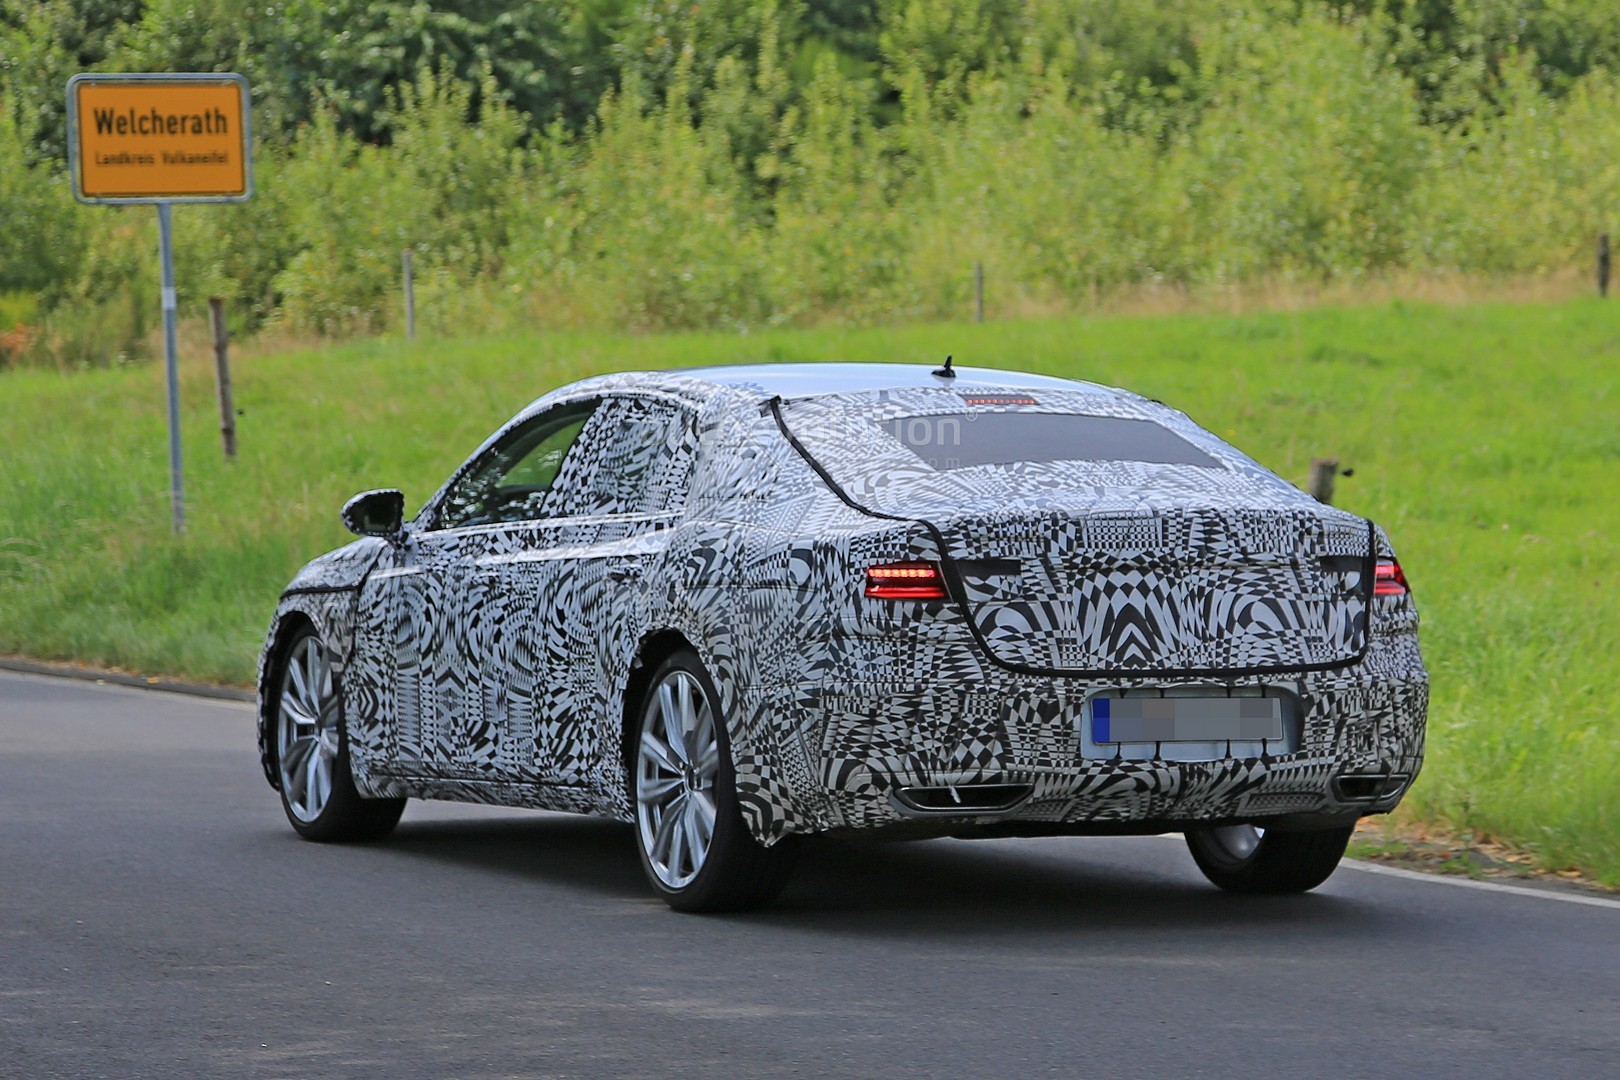 2018 volkswagen cc fastback hatch spied testing awd accompanied by bmw 4 series autoevolution. Black Bedroom Furniture Sets. Home Design Ideas